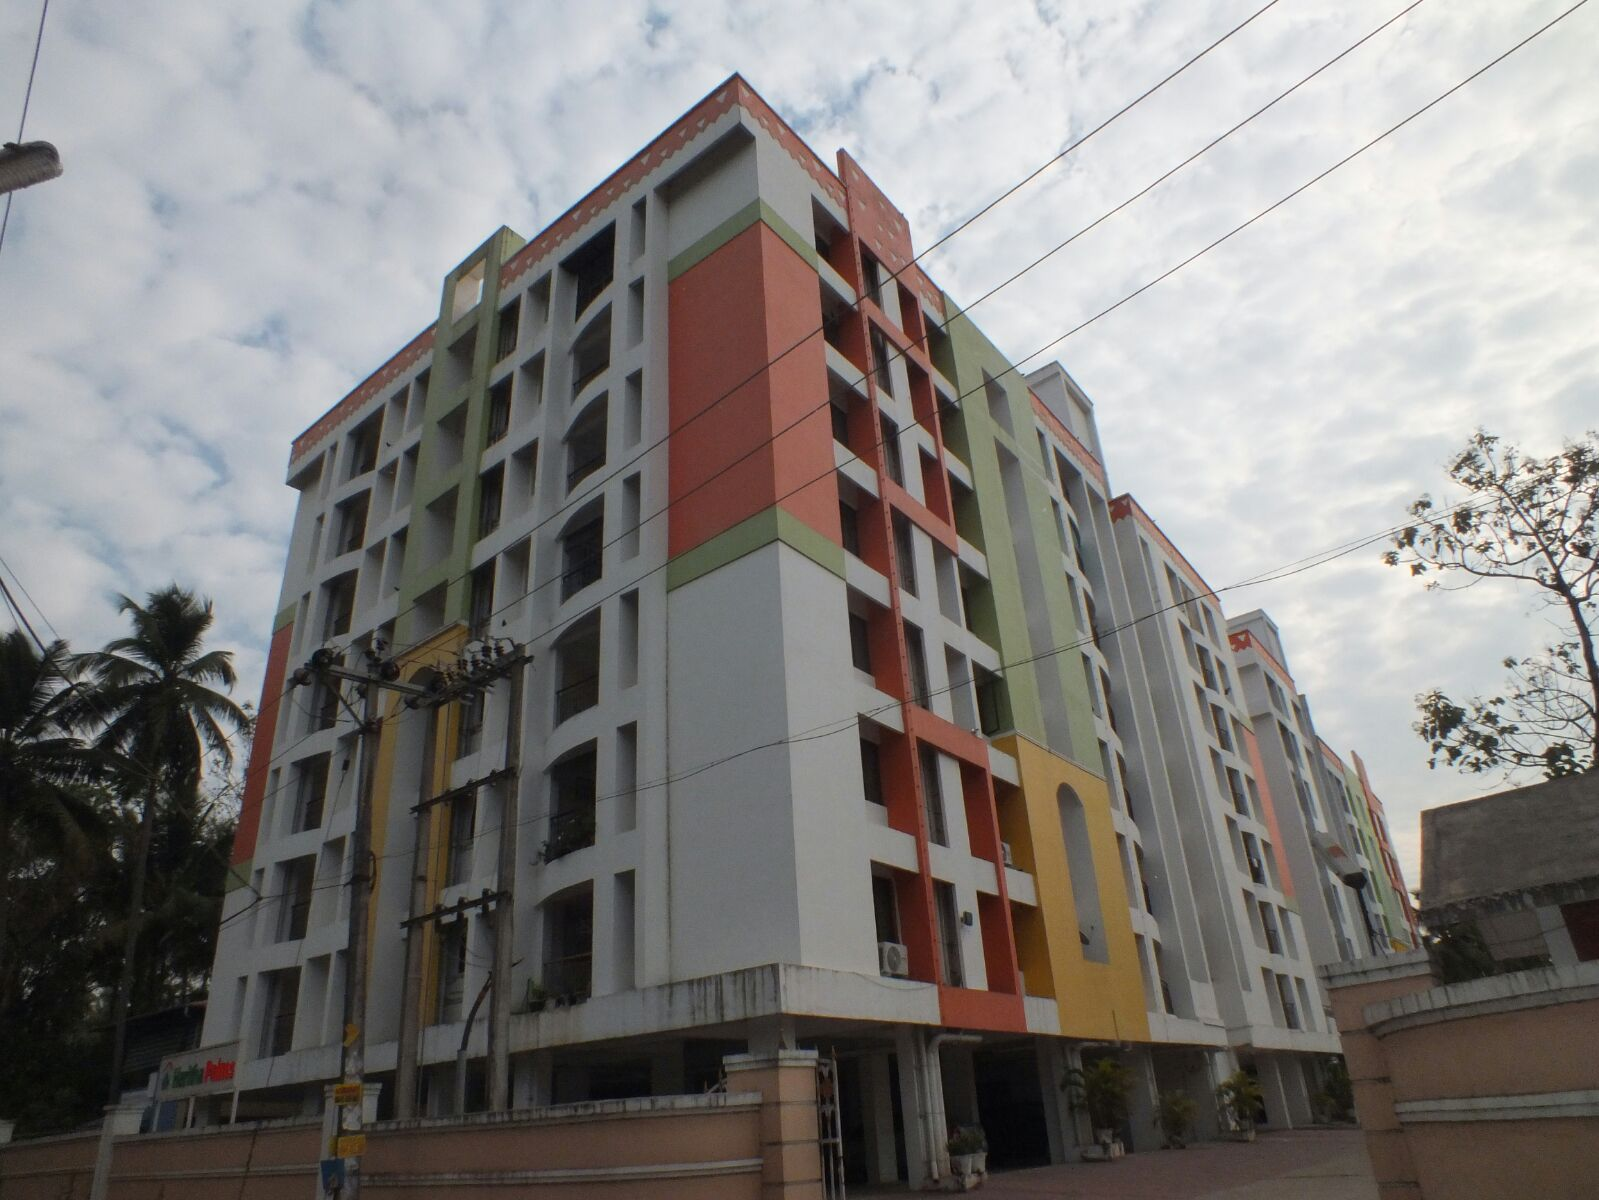 2 BHK appartment Haritha Homes Koorkenchery, Thrissur